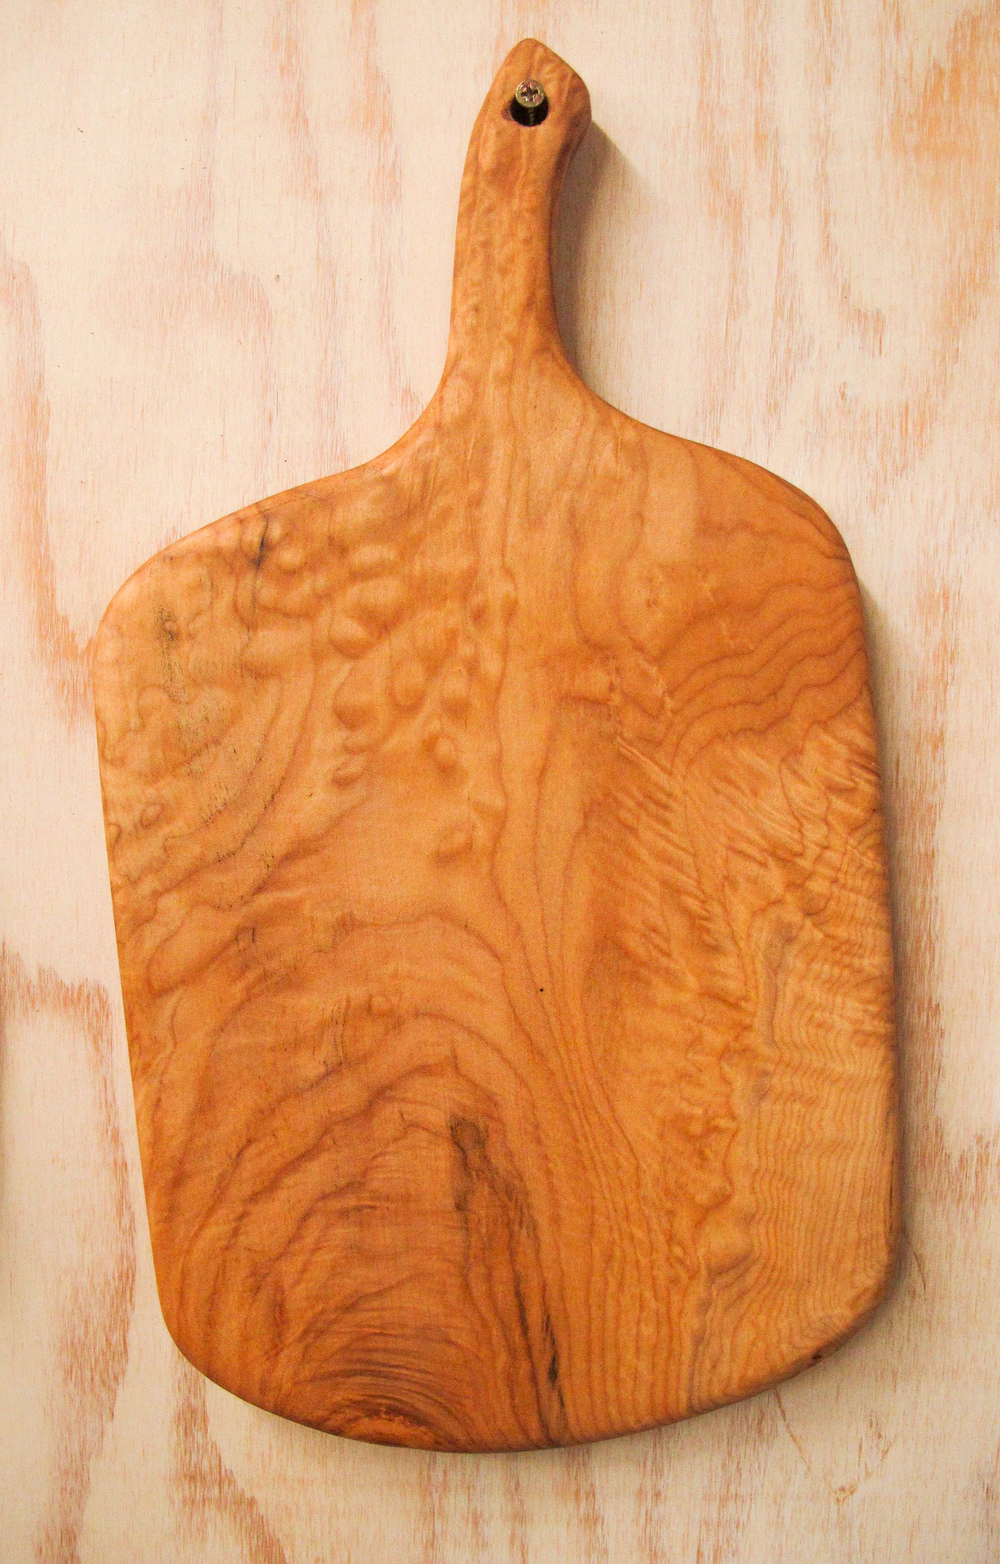 CuttingBoard27.jpg